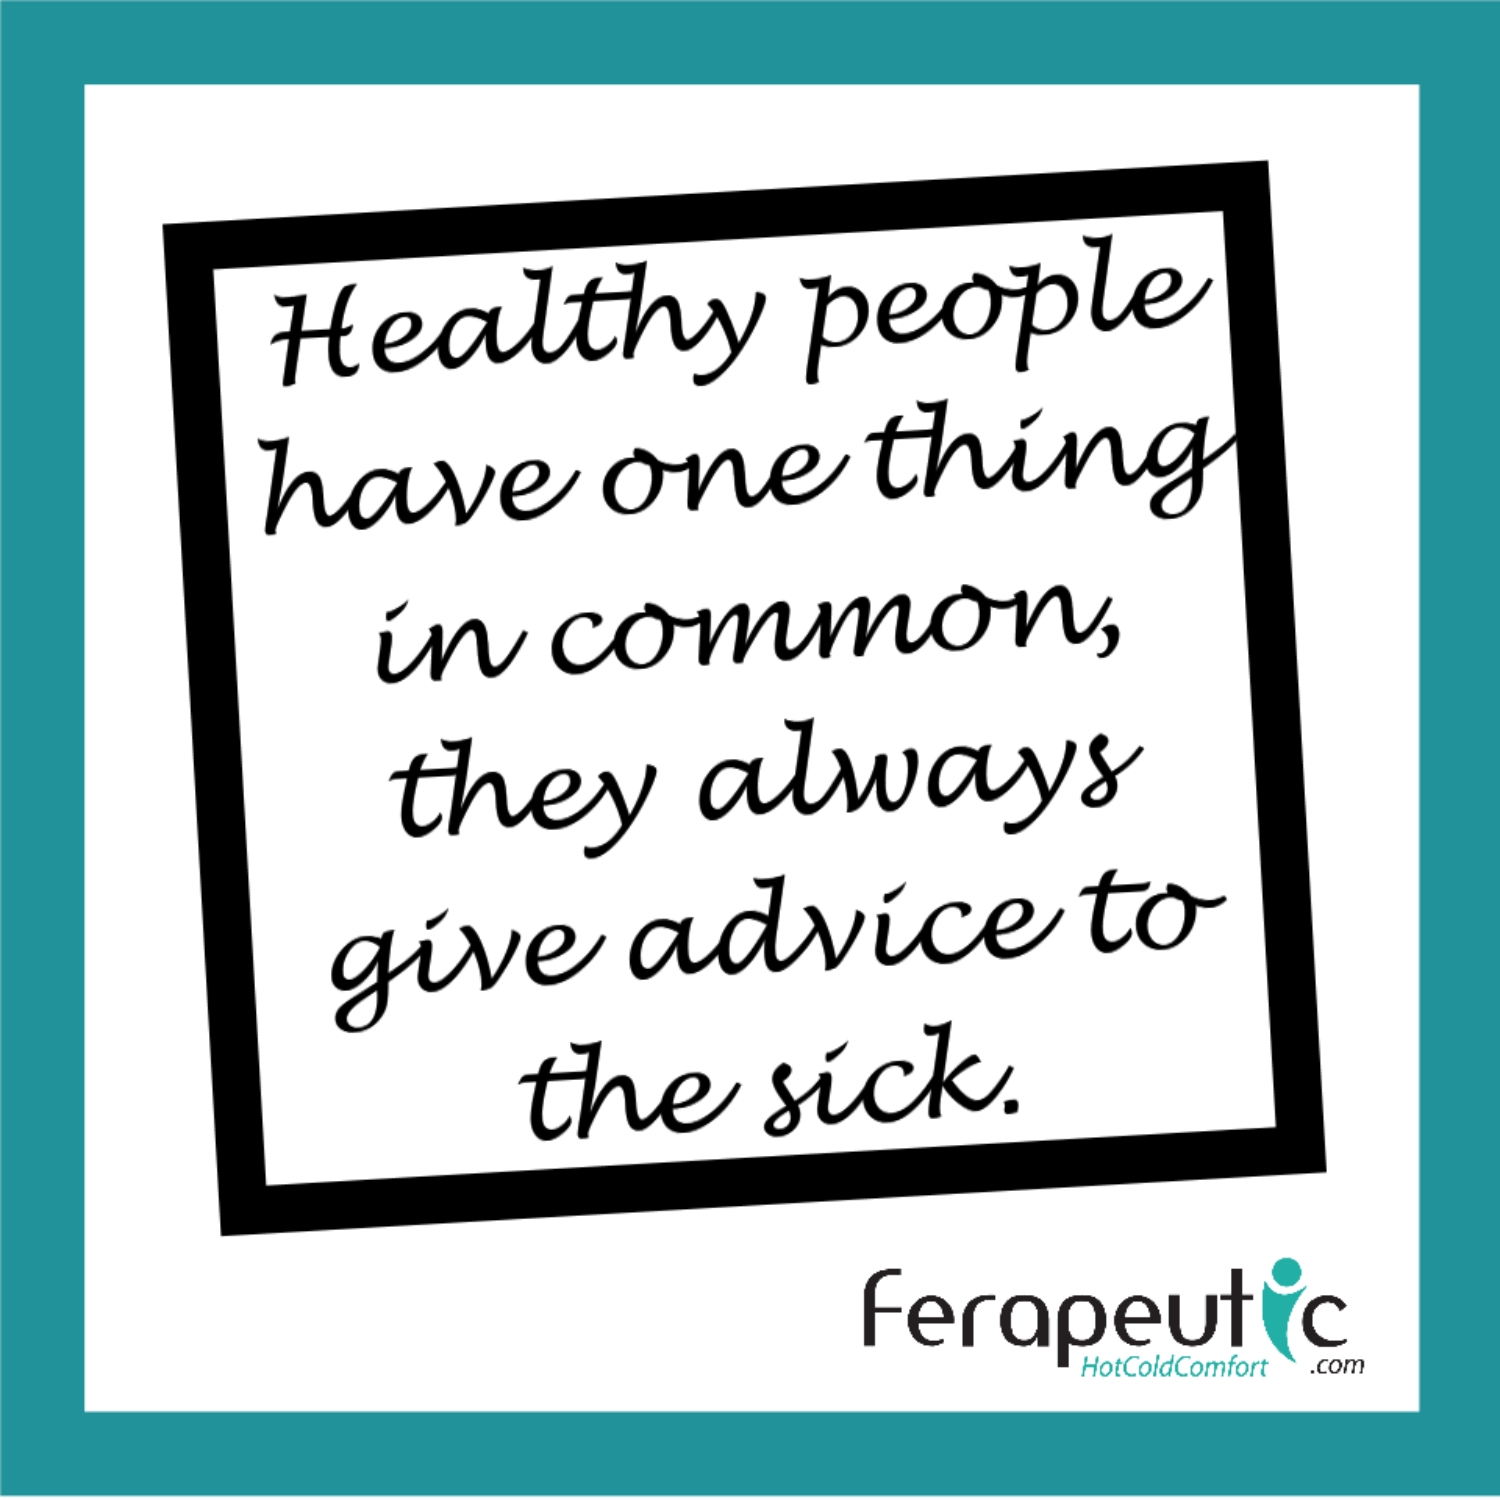 Healthy people give advice